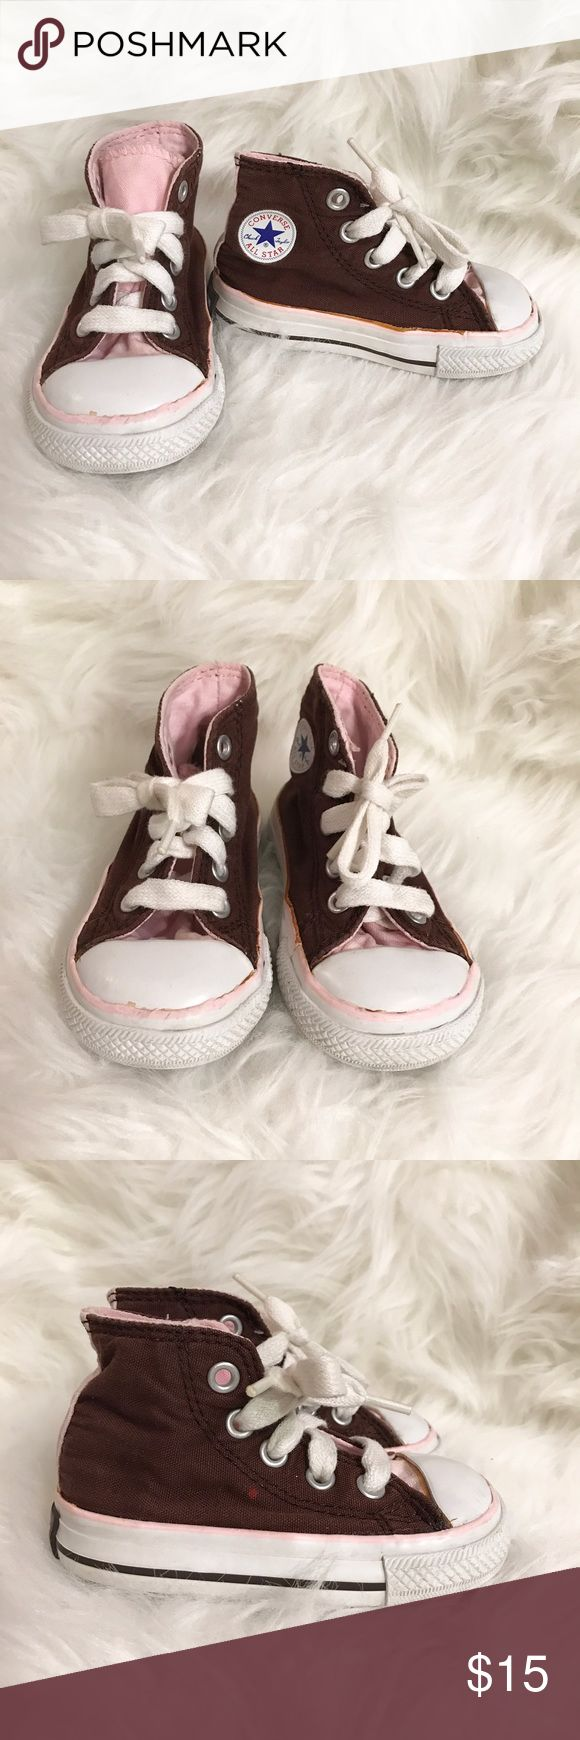 CONVERSE brown & pink high top sneaker shoes Super adorable baby girl brown & pink high top sneaker shoes. Used but still in good condition. Converse Shoes Sneakers